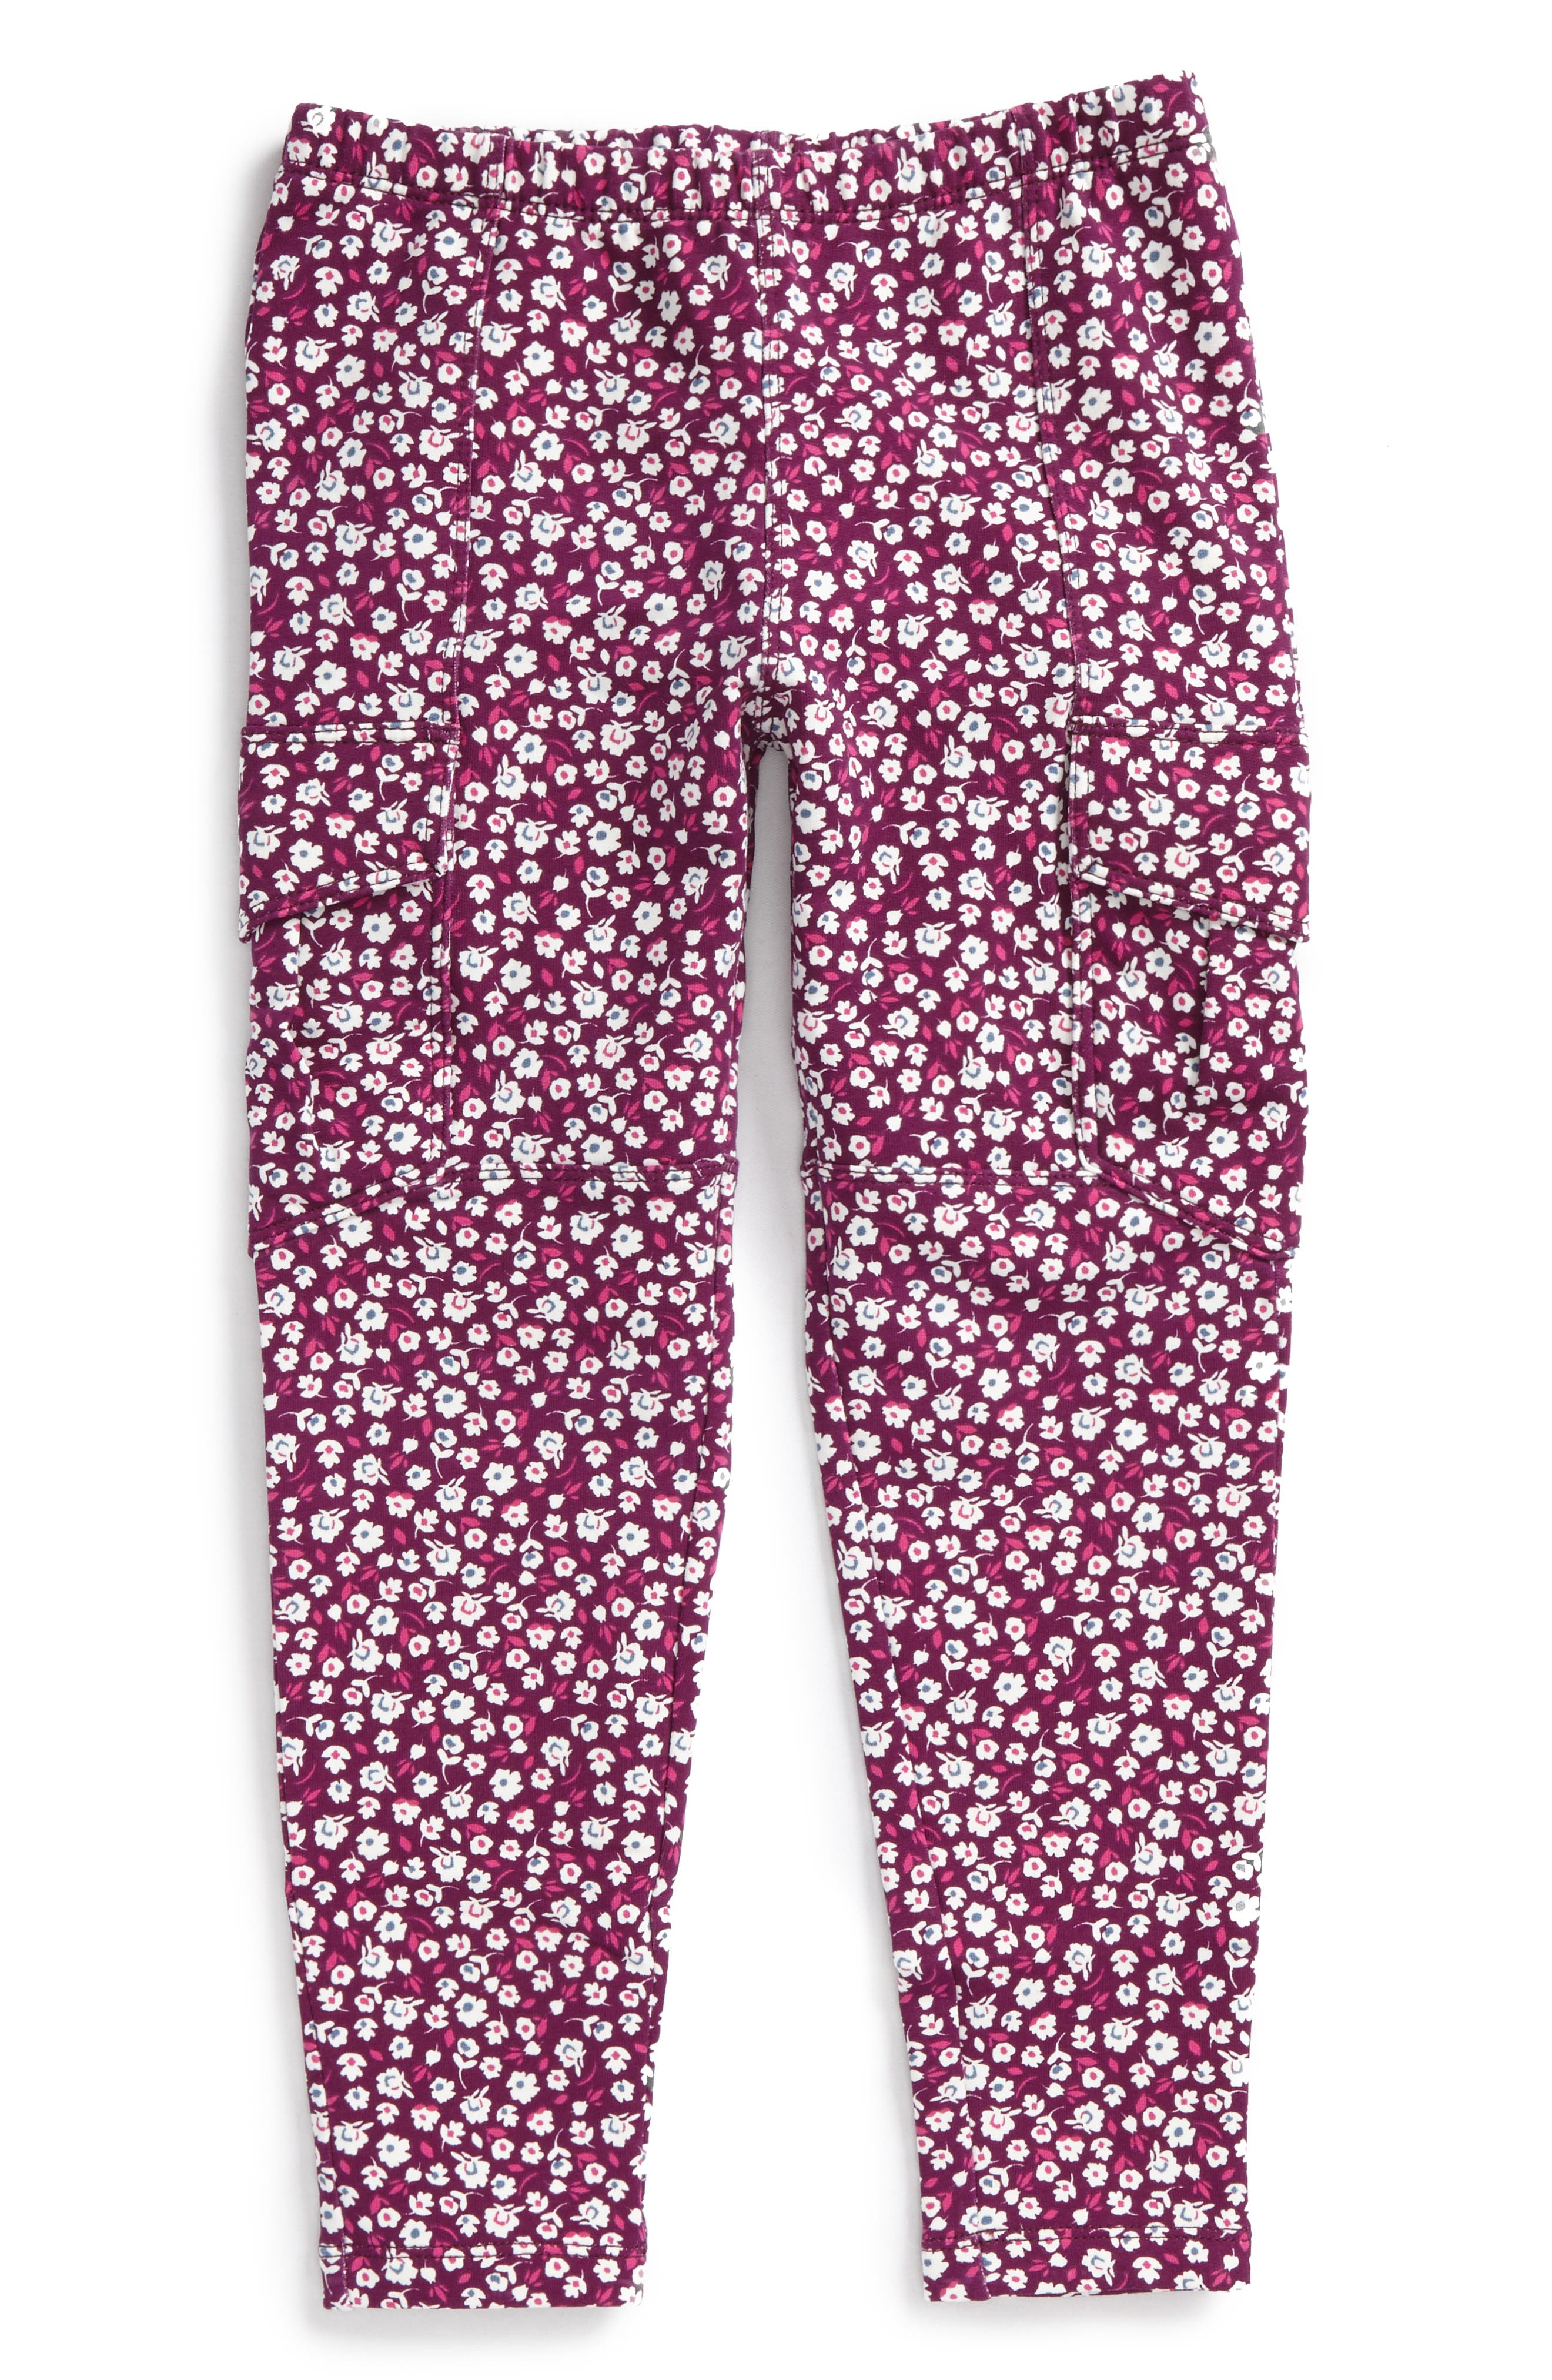 Tea Collection Ditsy French Terry Cargo Pants (Toddler Girls, Little Girls & Big Girls)